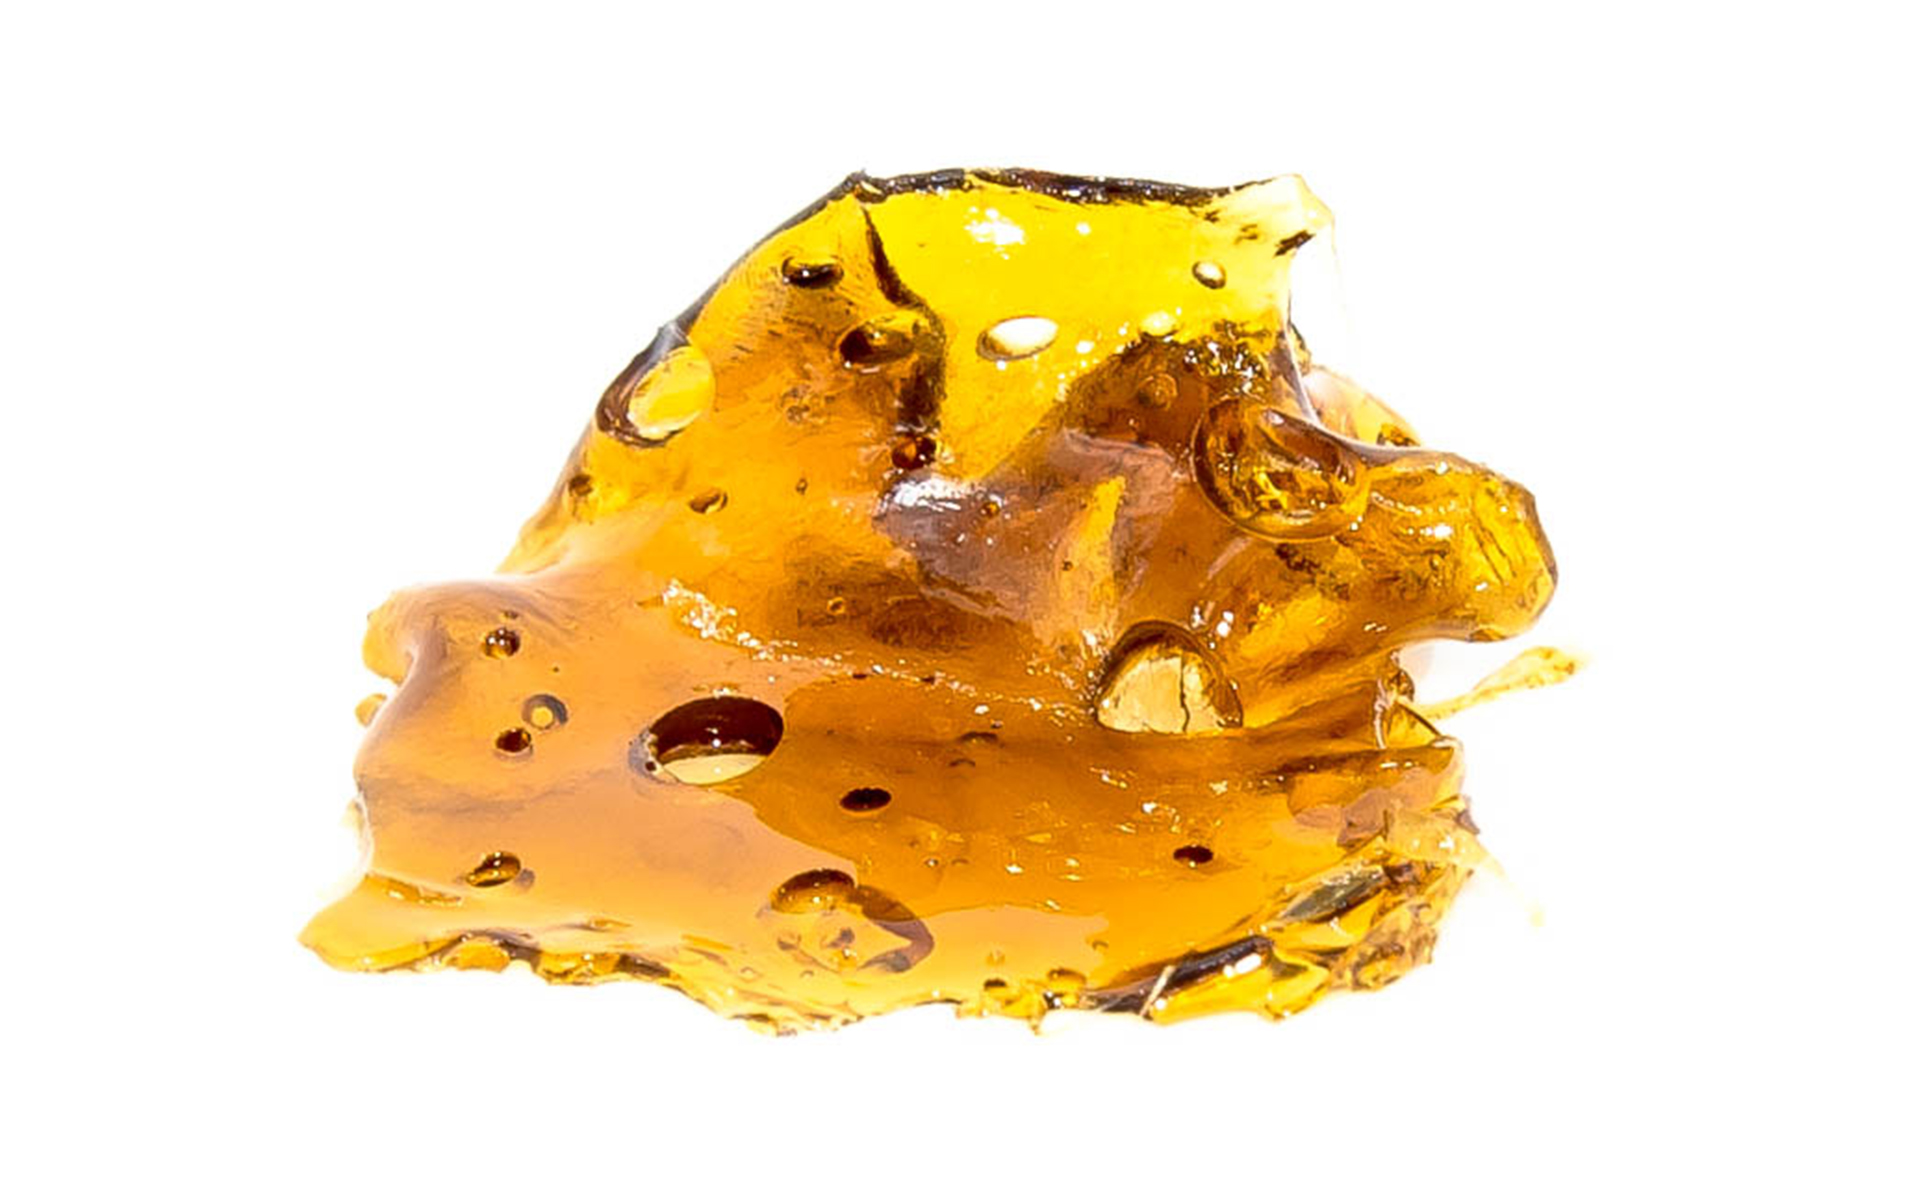 forbidden fruit shatter claywolf - America's most affordable THC wax, oil, and hash of 2020